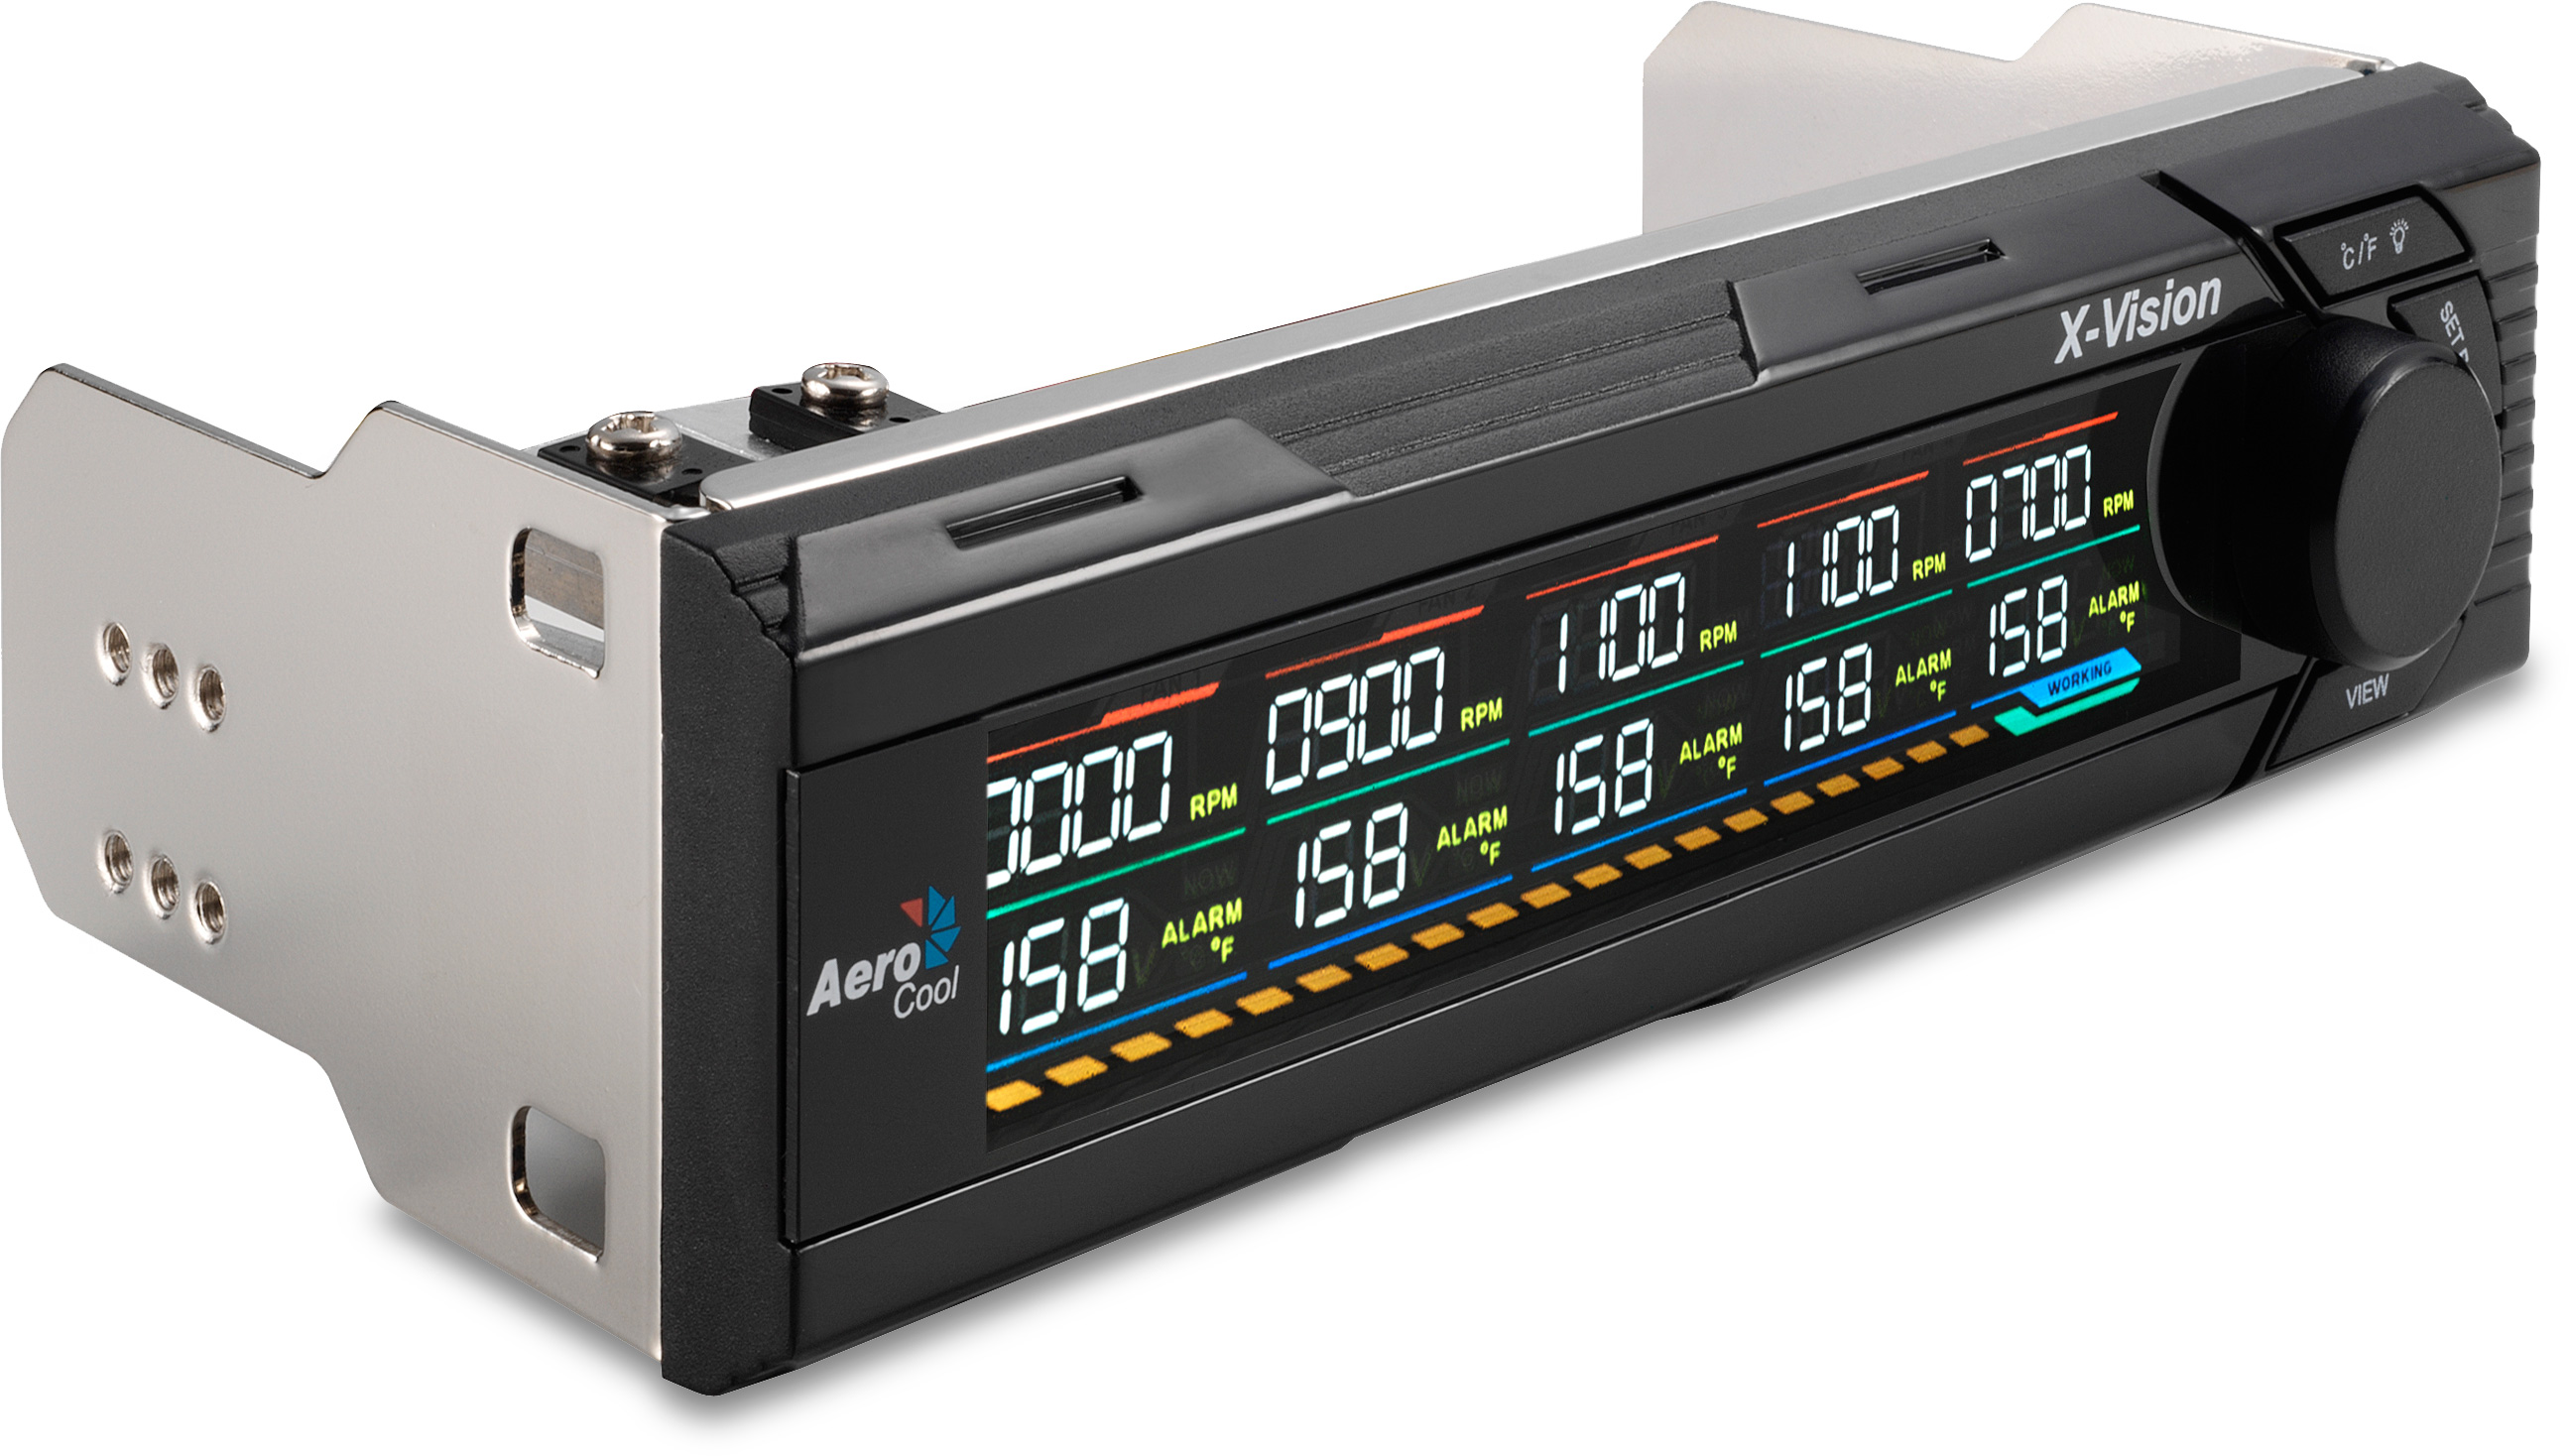 features controls and monitors five fans with temperatures overheating  #A96C22